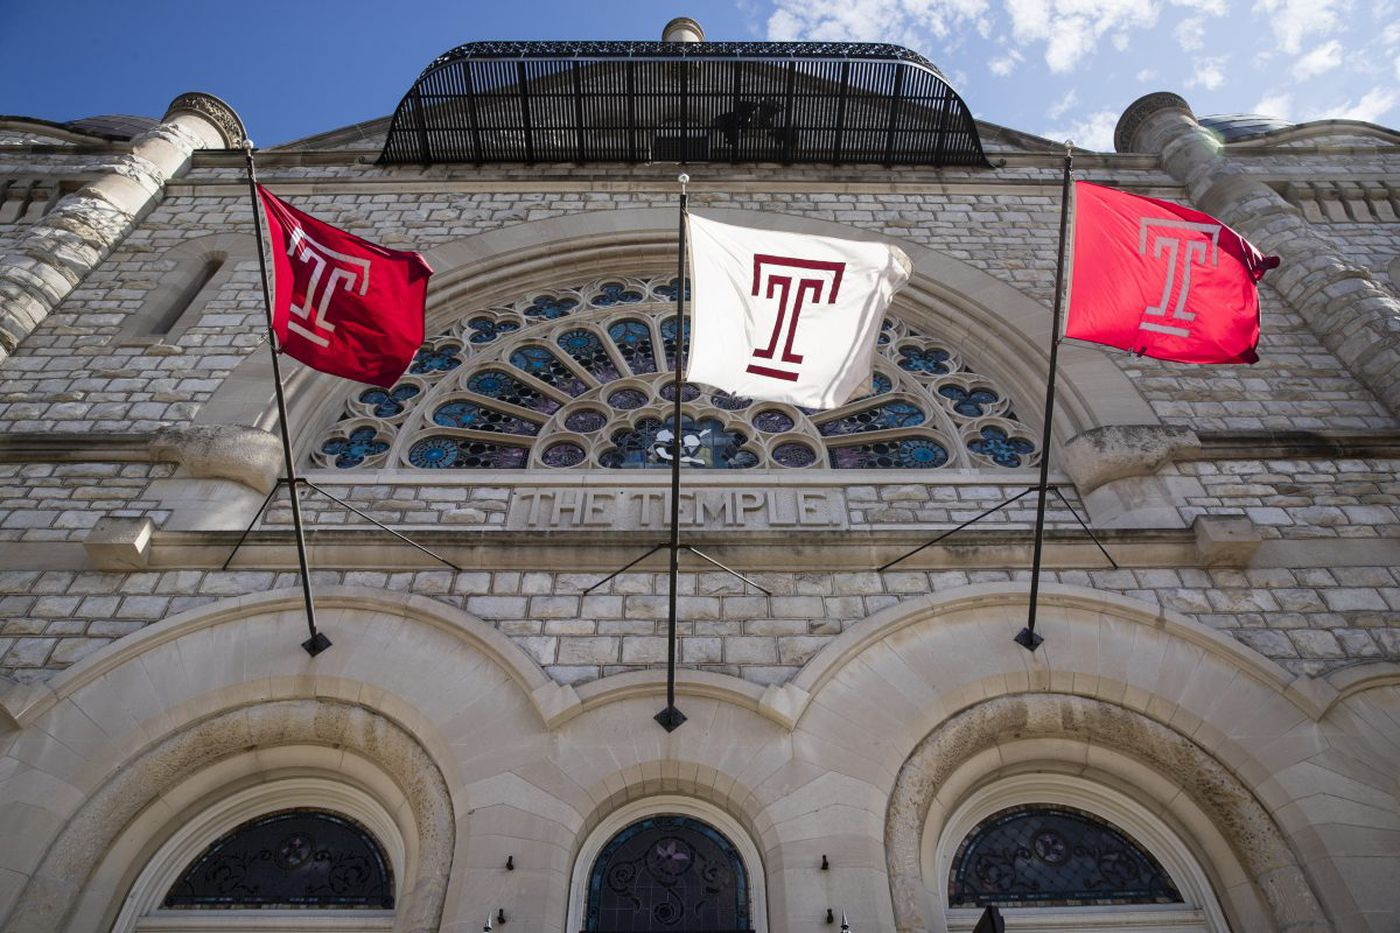 2 Temple students' deaths were ODs, official confirms